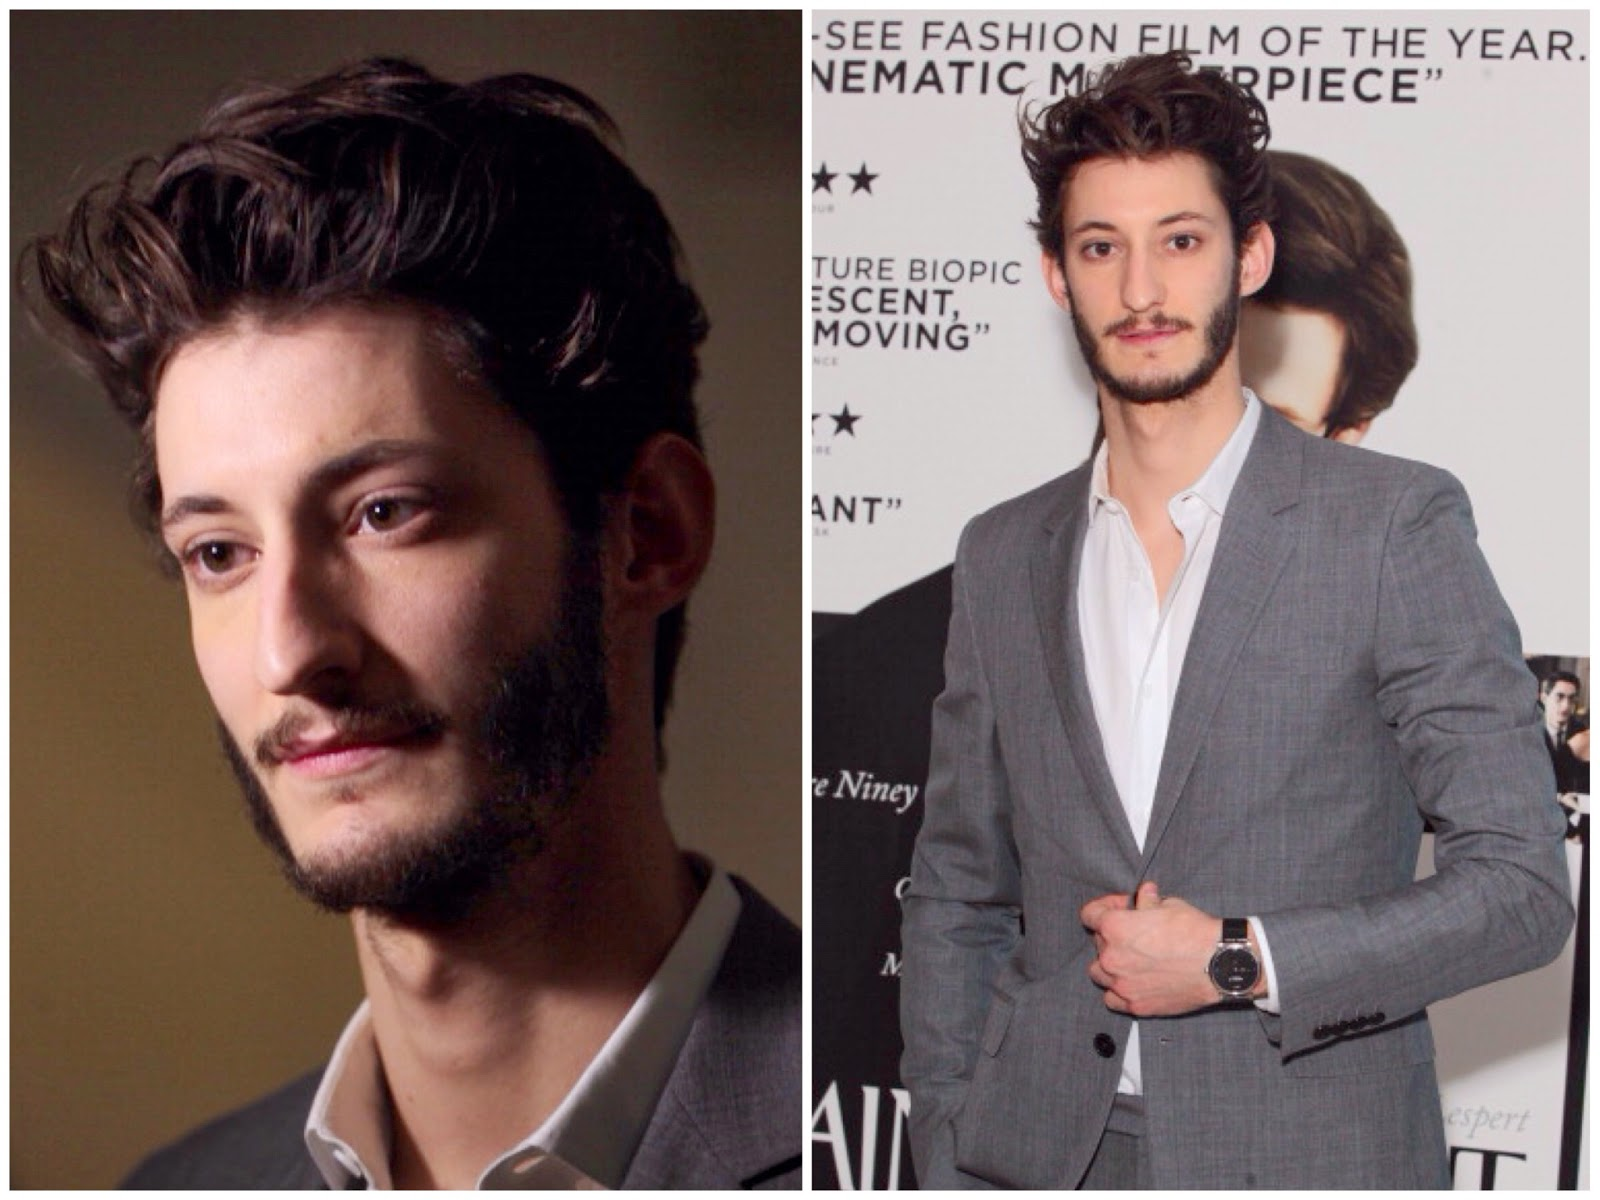 Pierre Niney's Montblanc Star Classique Timepiece - 'Yves Saint Laurent' Preview screening